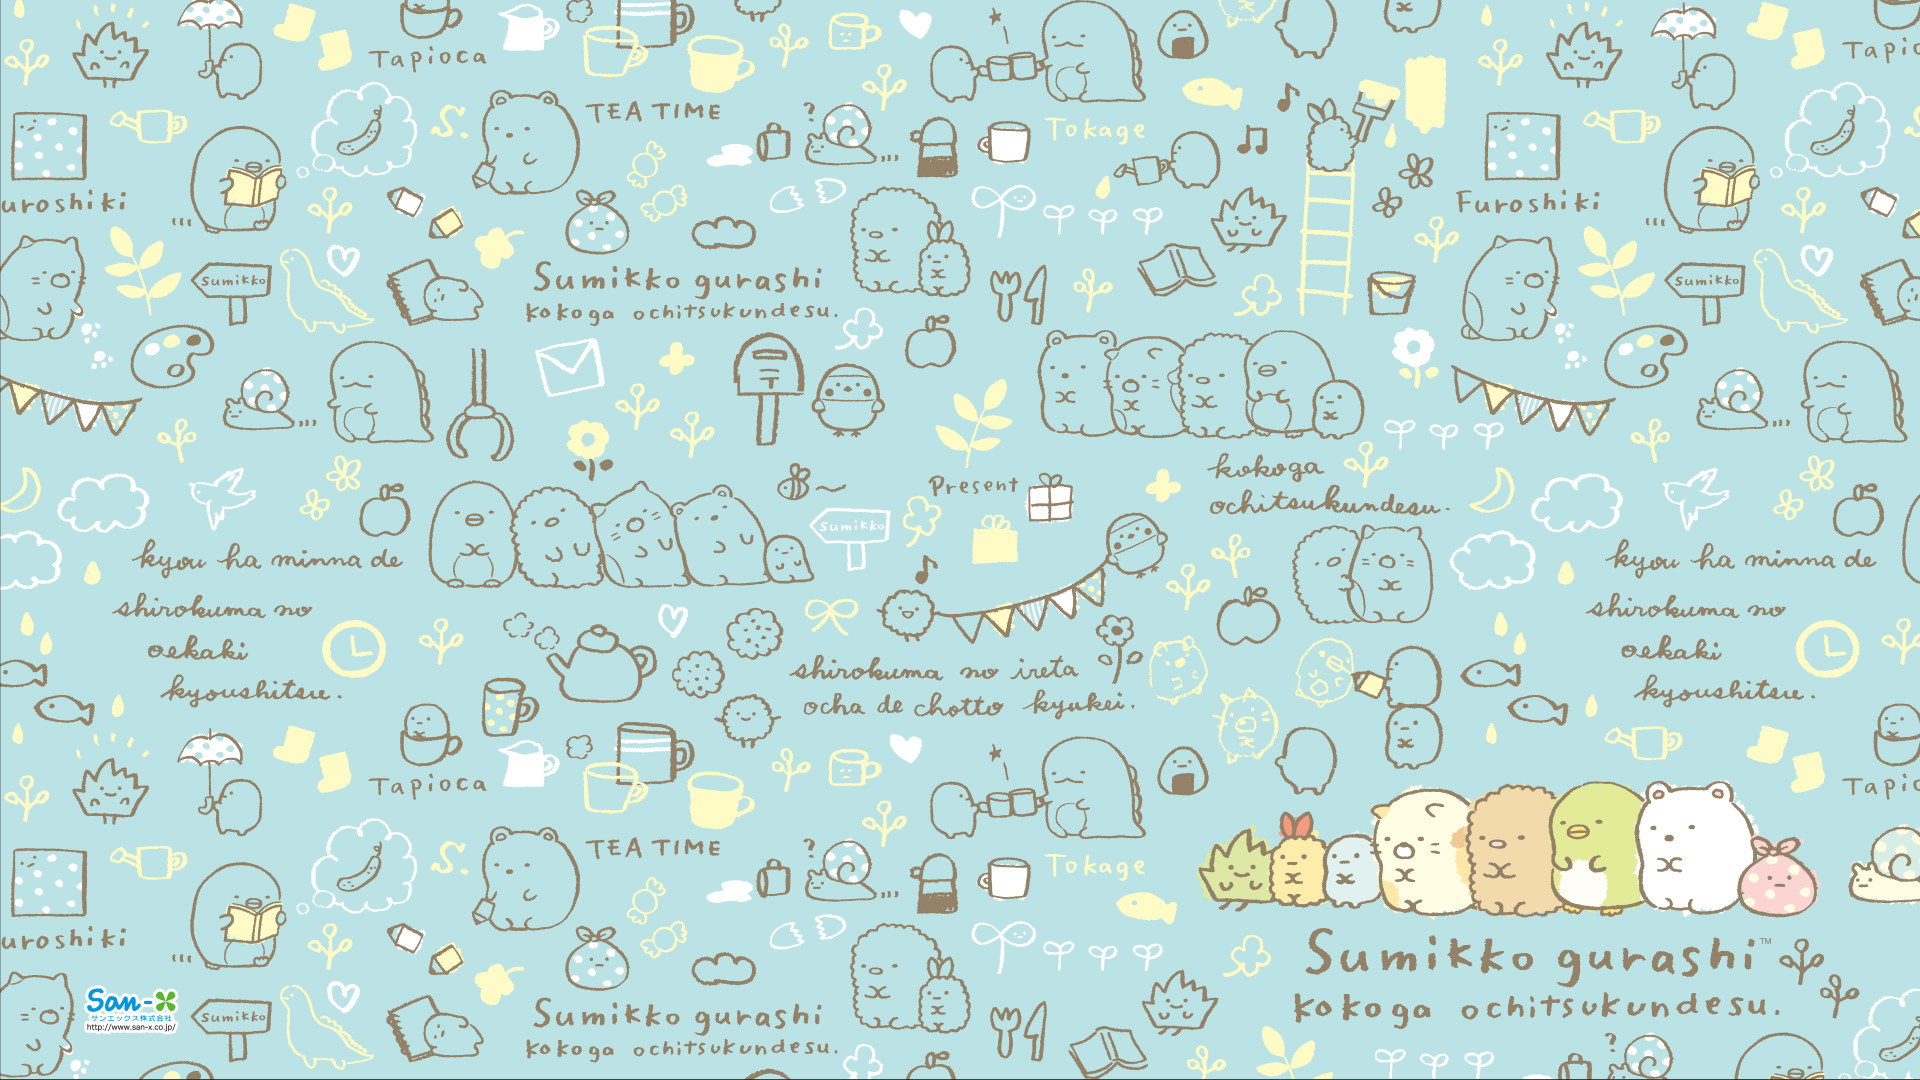 1920x1080 New Sumikkogurashi Tea Time Wallpaper - Sumikkogurashi - Cute little  animals that love to live in corners! From San-X, I love the blue, yellow  and brown ...